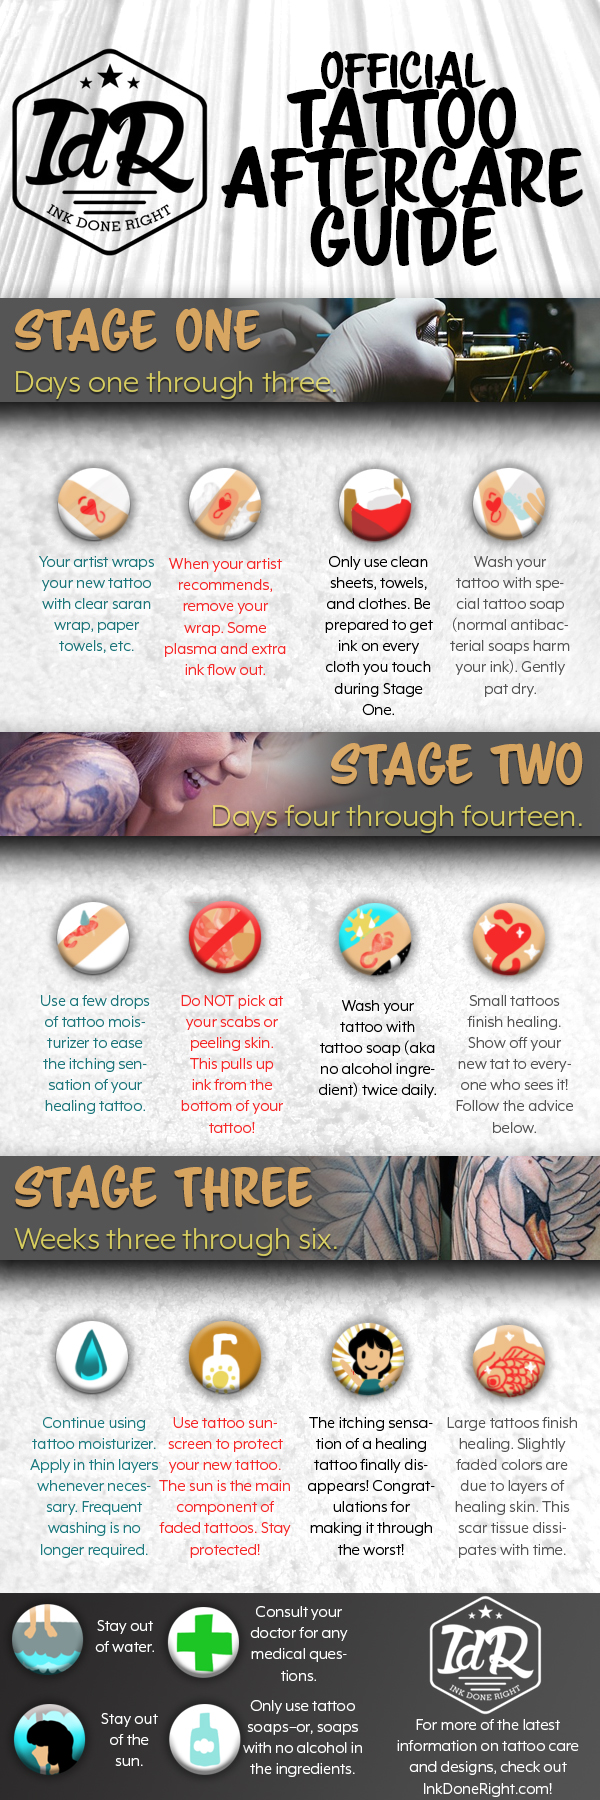 How To Care For A Tattoo AfterCare Guide